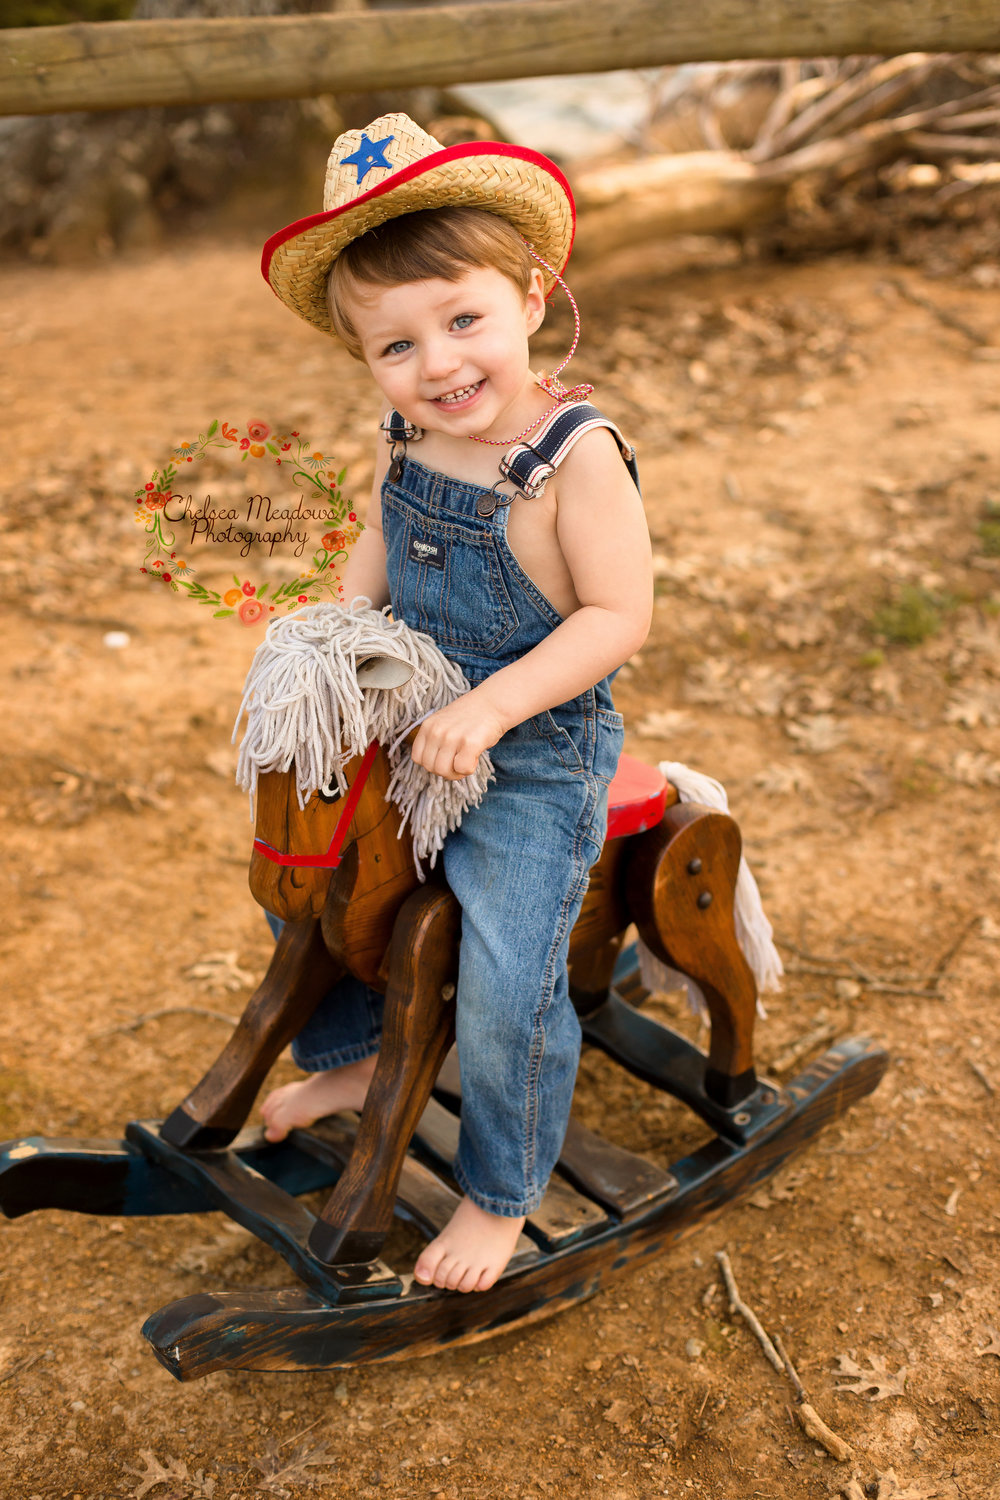 Grayson Cowboy Photos - Nashville family Photographer - Chelsea Meadows Photography (14)_edited-2.jpg